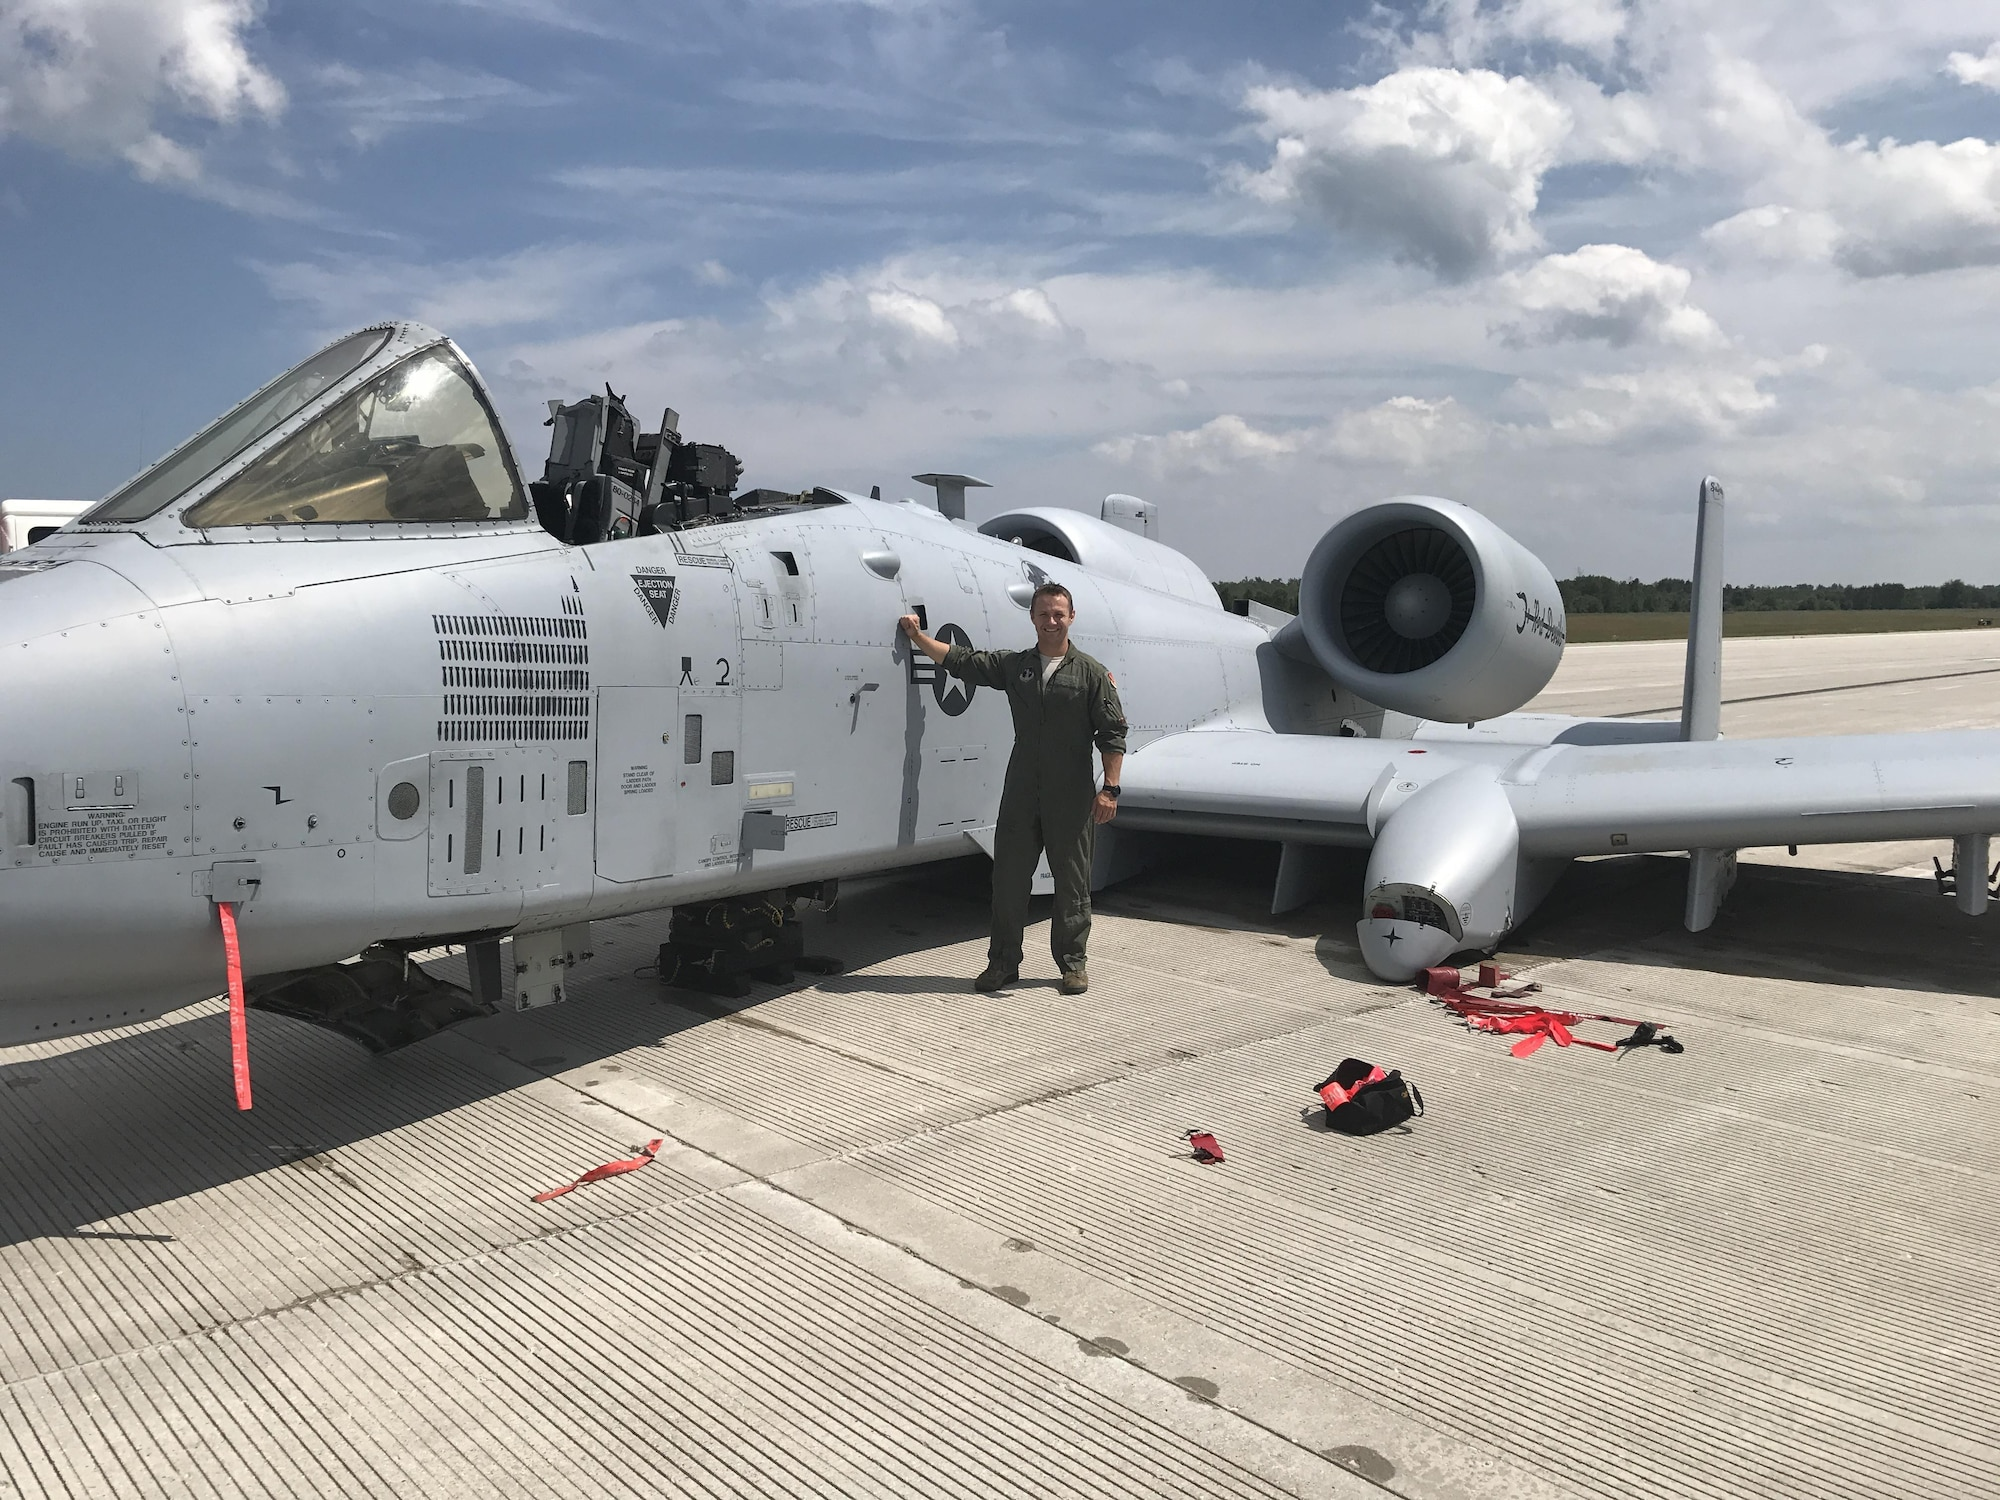 Capt. Brett DeVries, an A-10 Thunderbolt II pilot of the 107th Fighter Squadron from Selfridge Air National Guard Base, next to the aircraft he safely landed after a malfunction forced him to make an emergency landing July 20, 2017, at the Alpena Combat Readiness Training Center. For his efforts, DeVries was awarded the Distinguished Flying Cross Nov. 6, 2020.